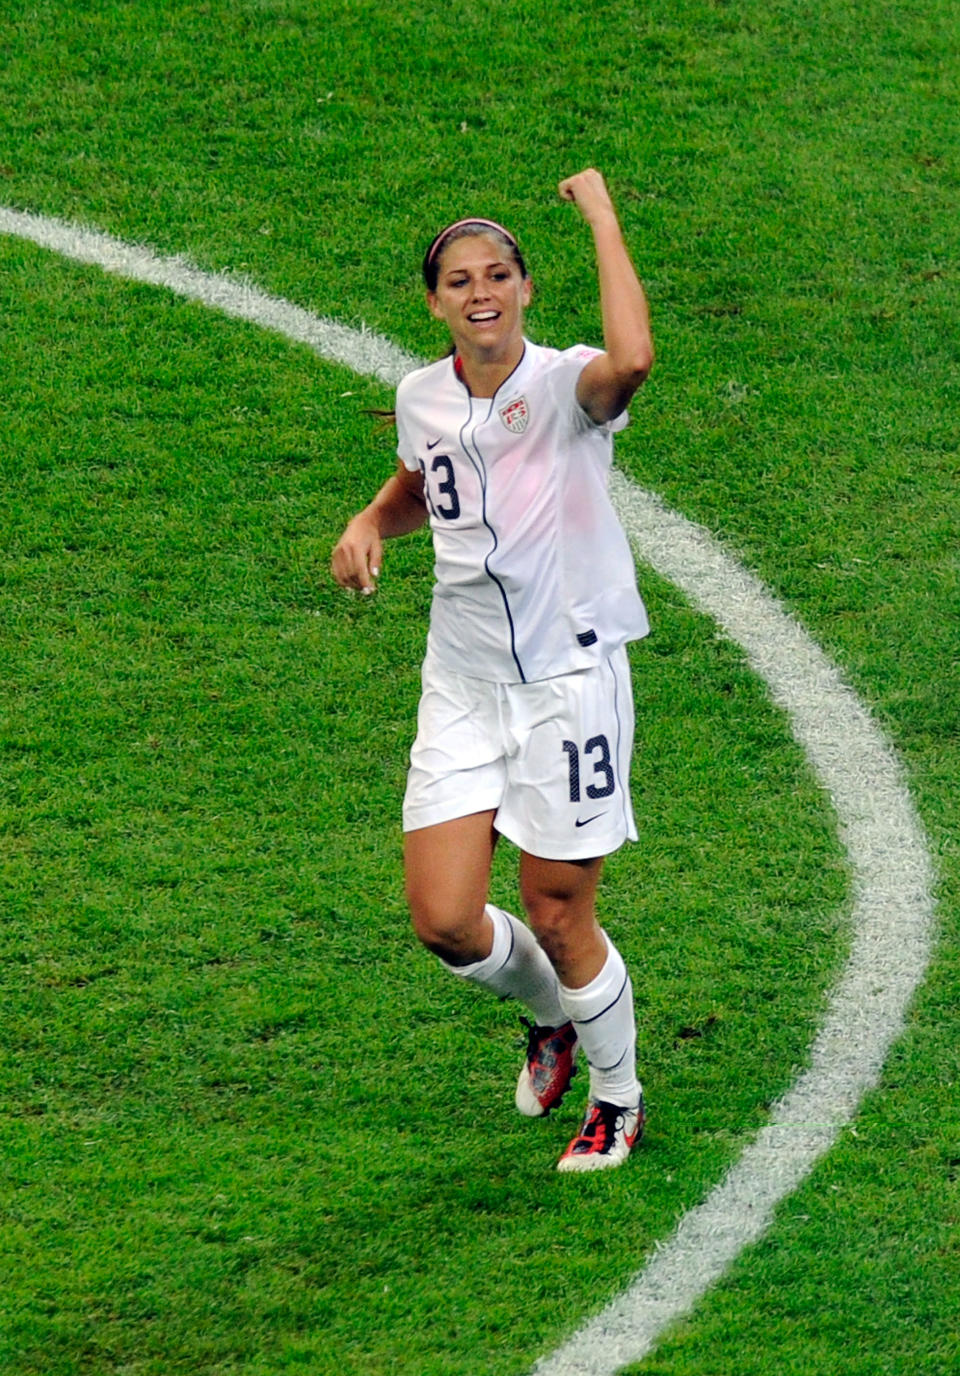 """2. Alex Morgan's teammates nicknamed the 23-year-old star """"Baby Horse,"""" which refers to Morgan's young age and galloping footwork on the field. (Getty Images)"""